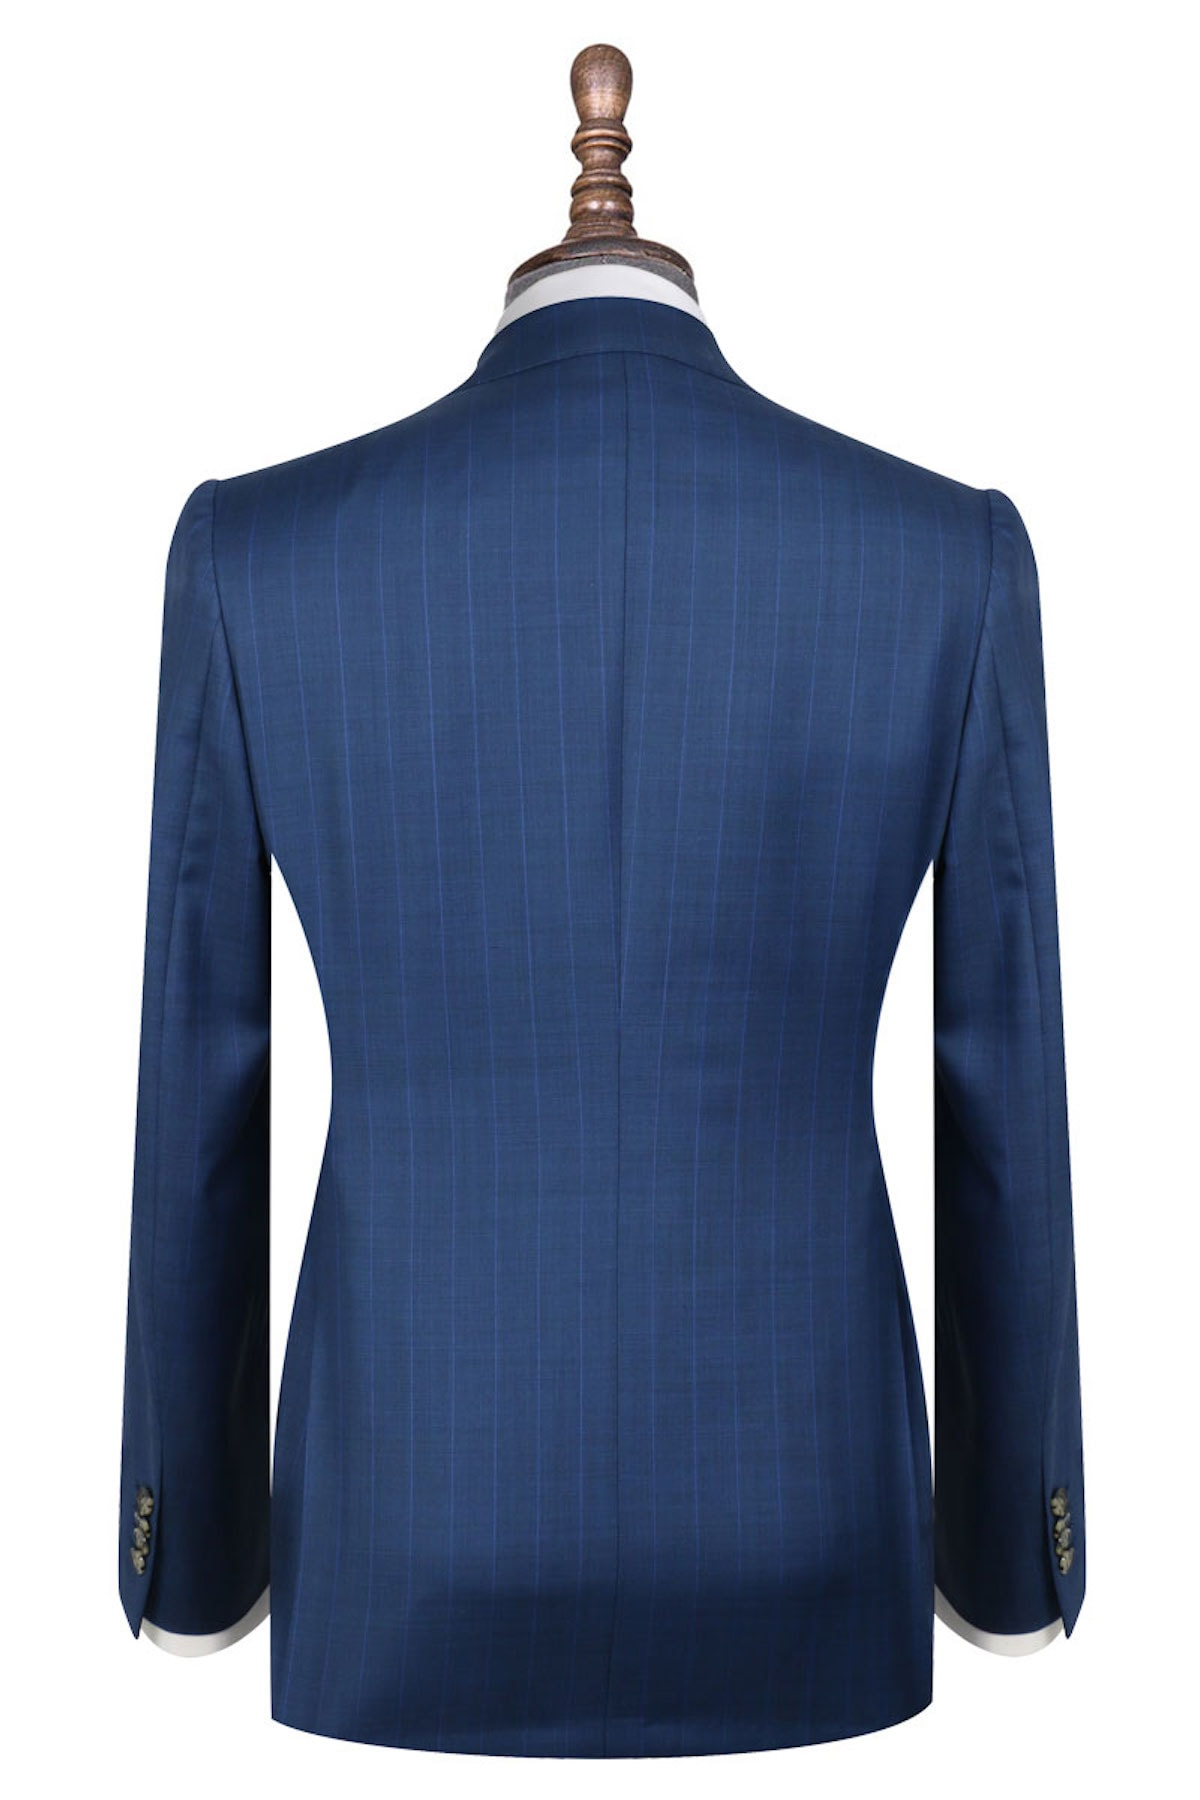 InStitchu Collection The Totti Blue Wool Jacket